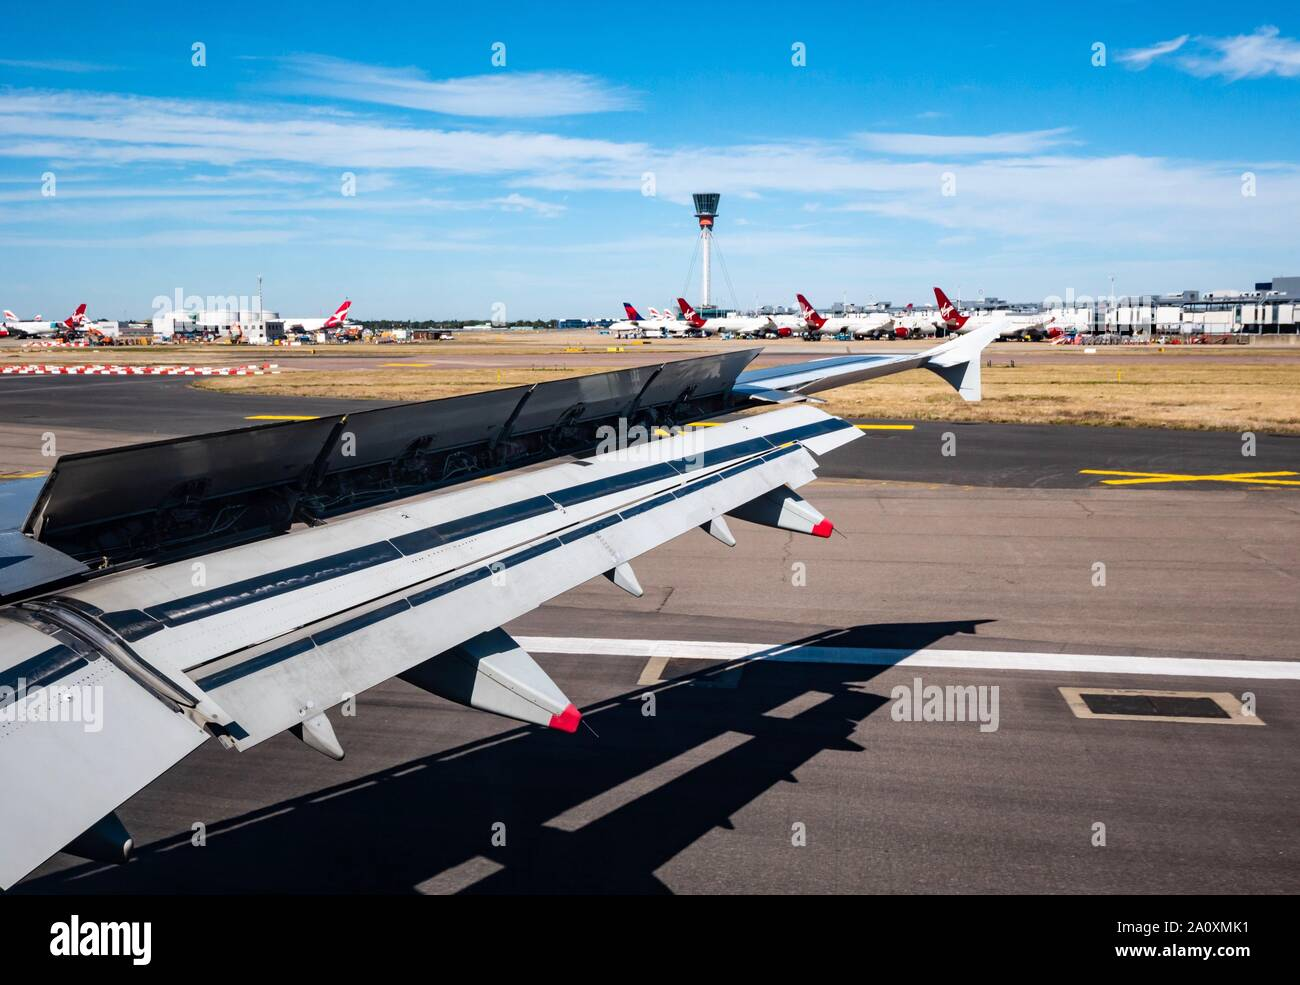 View from plane window over wing landing on airport runway with Virgin Atlantic aeroplanes, London, England, UK Stock Photo